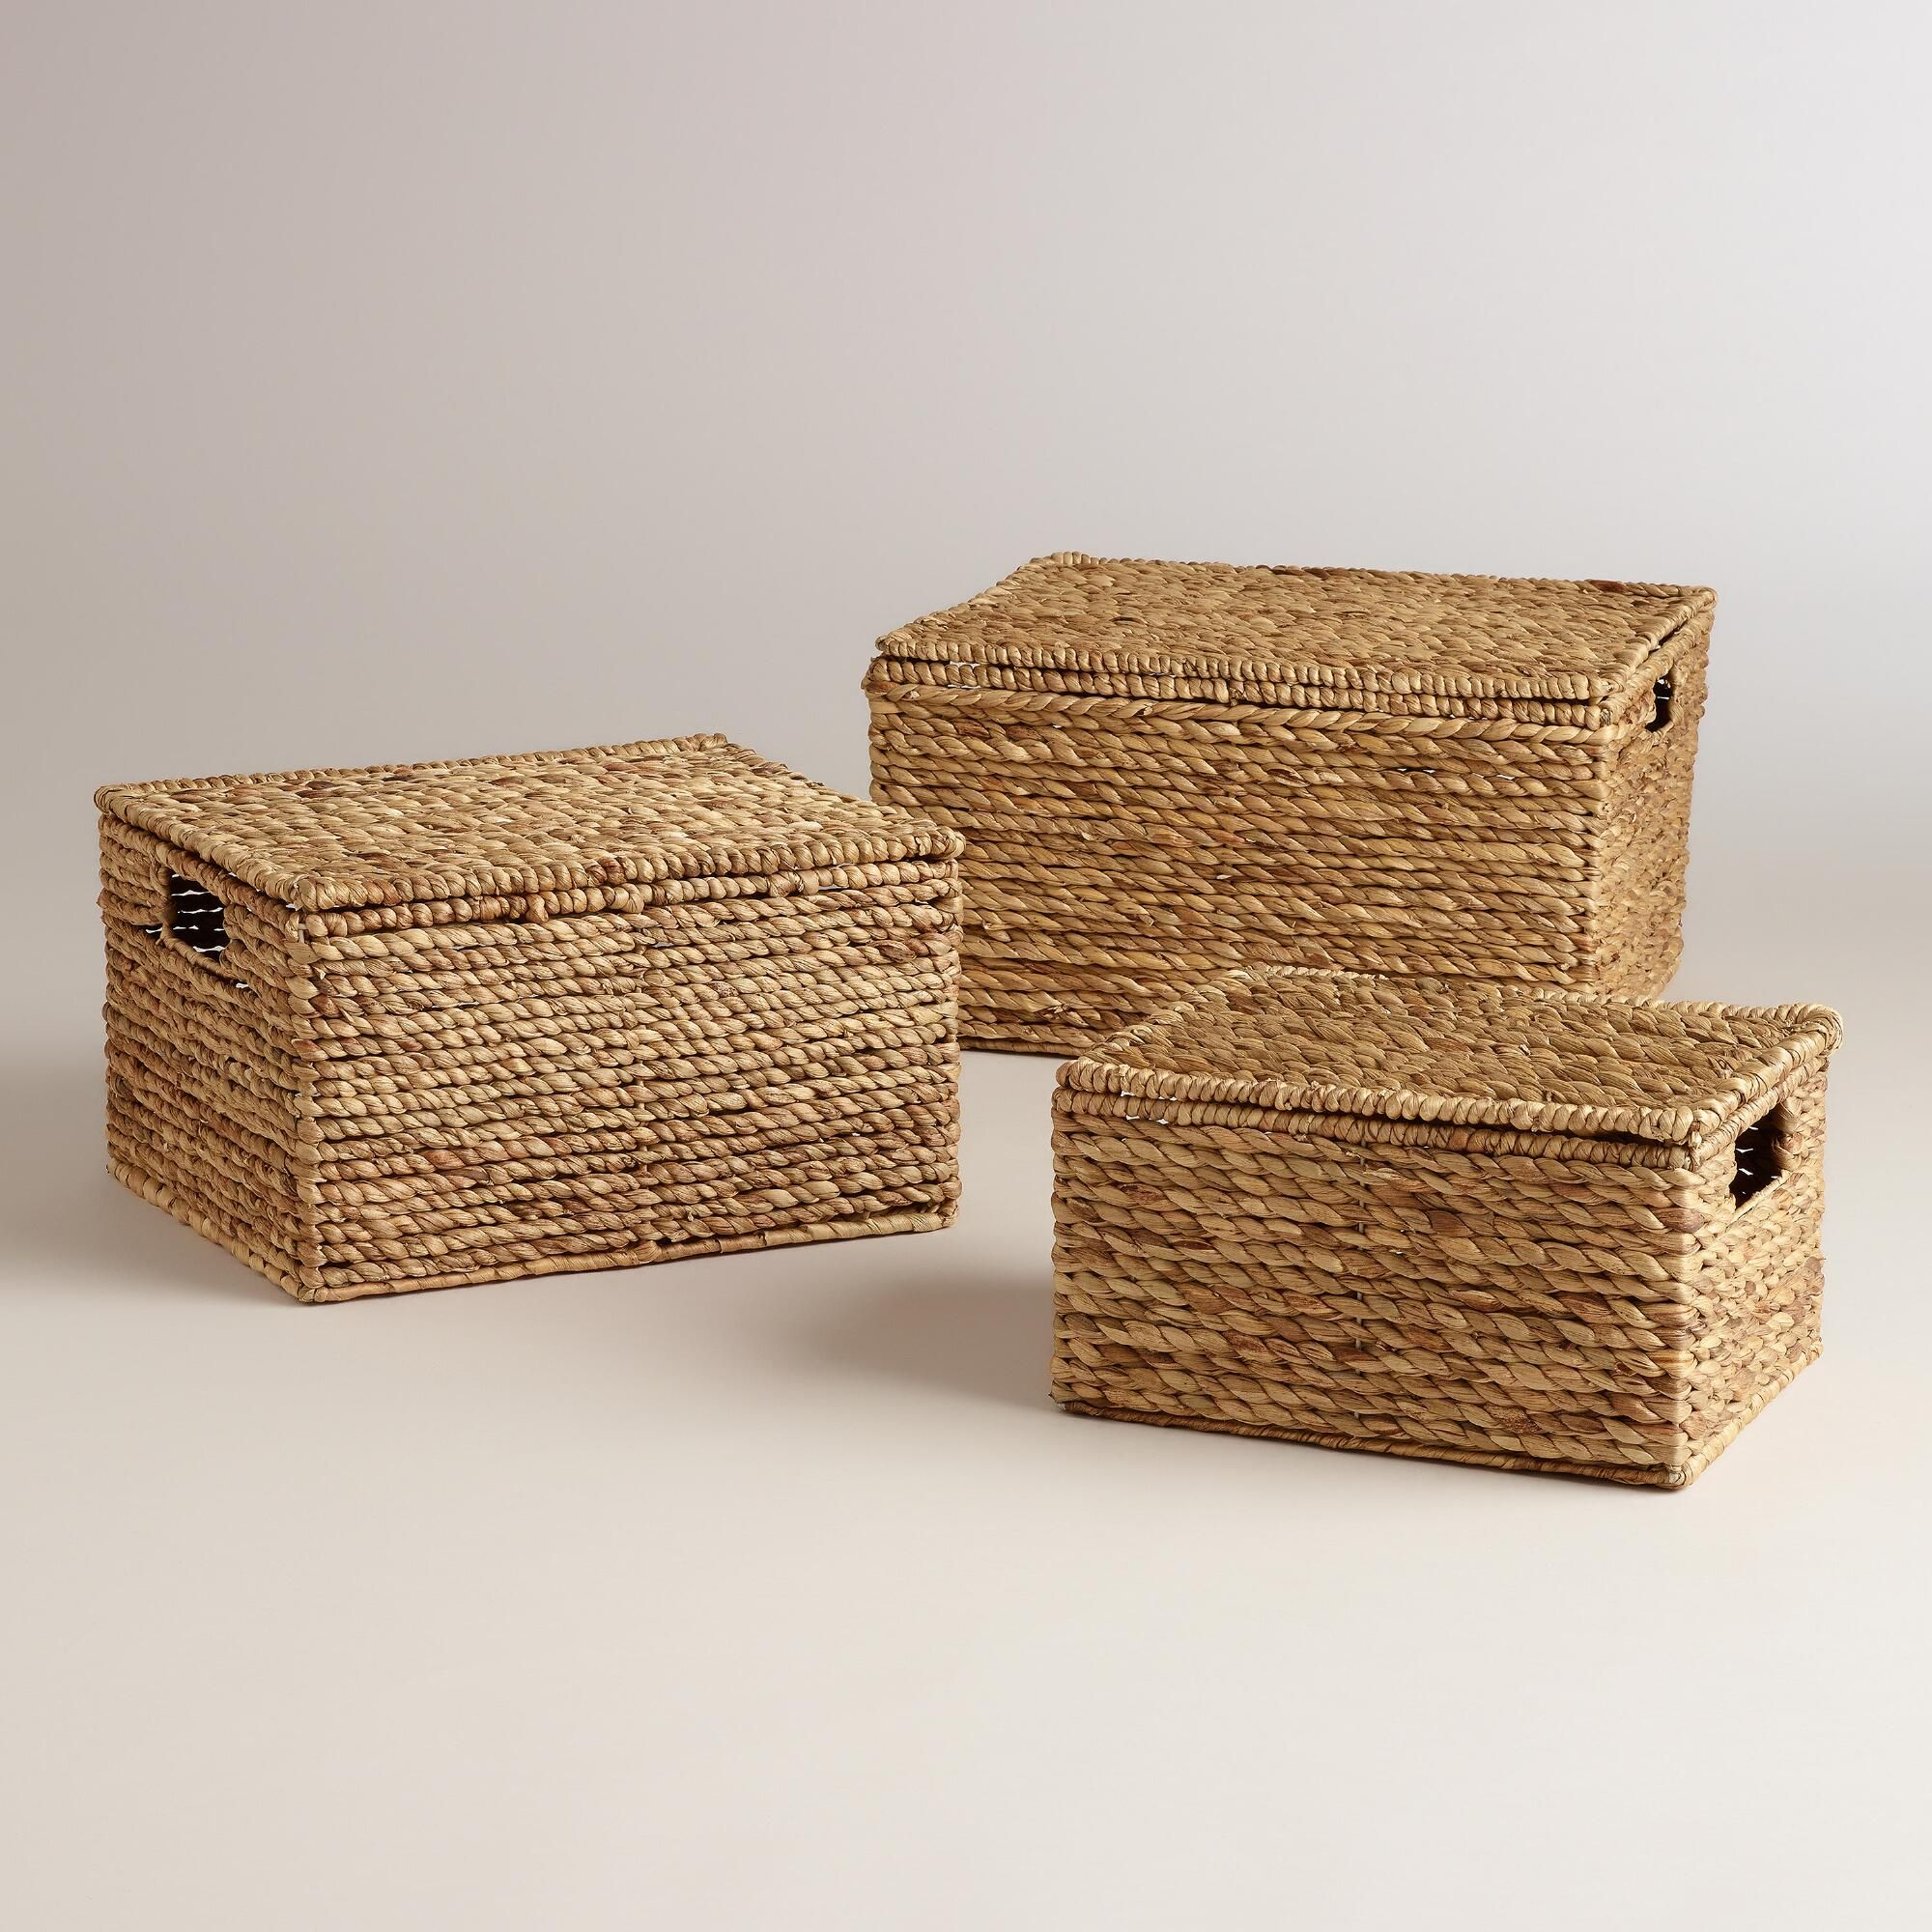 Wholesale Decorative Boxes And Baskets Natural Water Hyacinth Lidded Janina Utility Baskets  Shelving